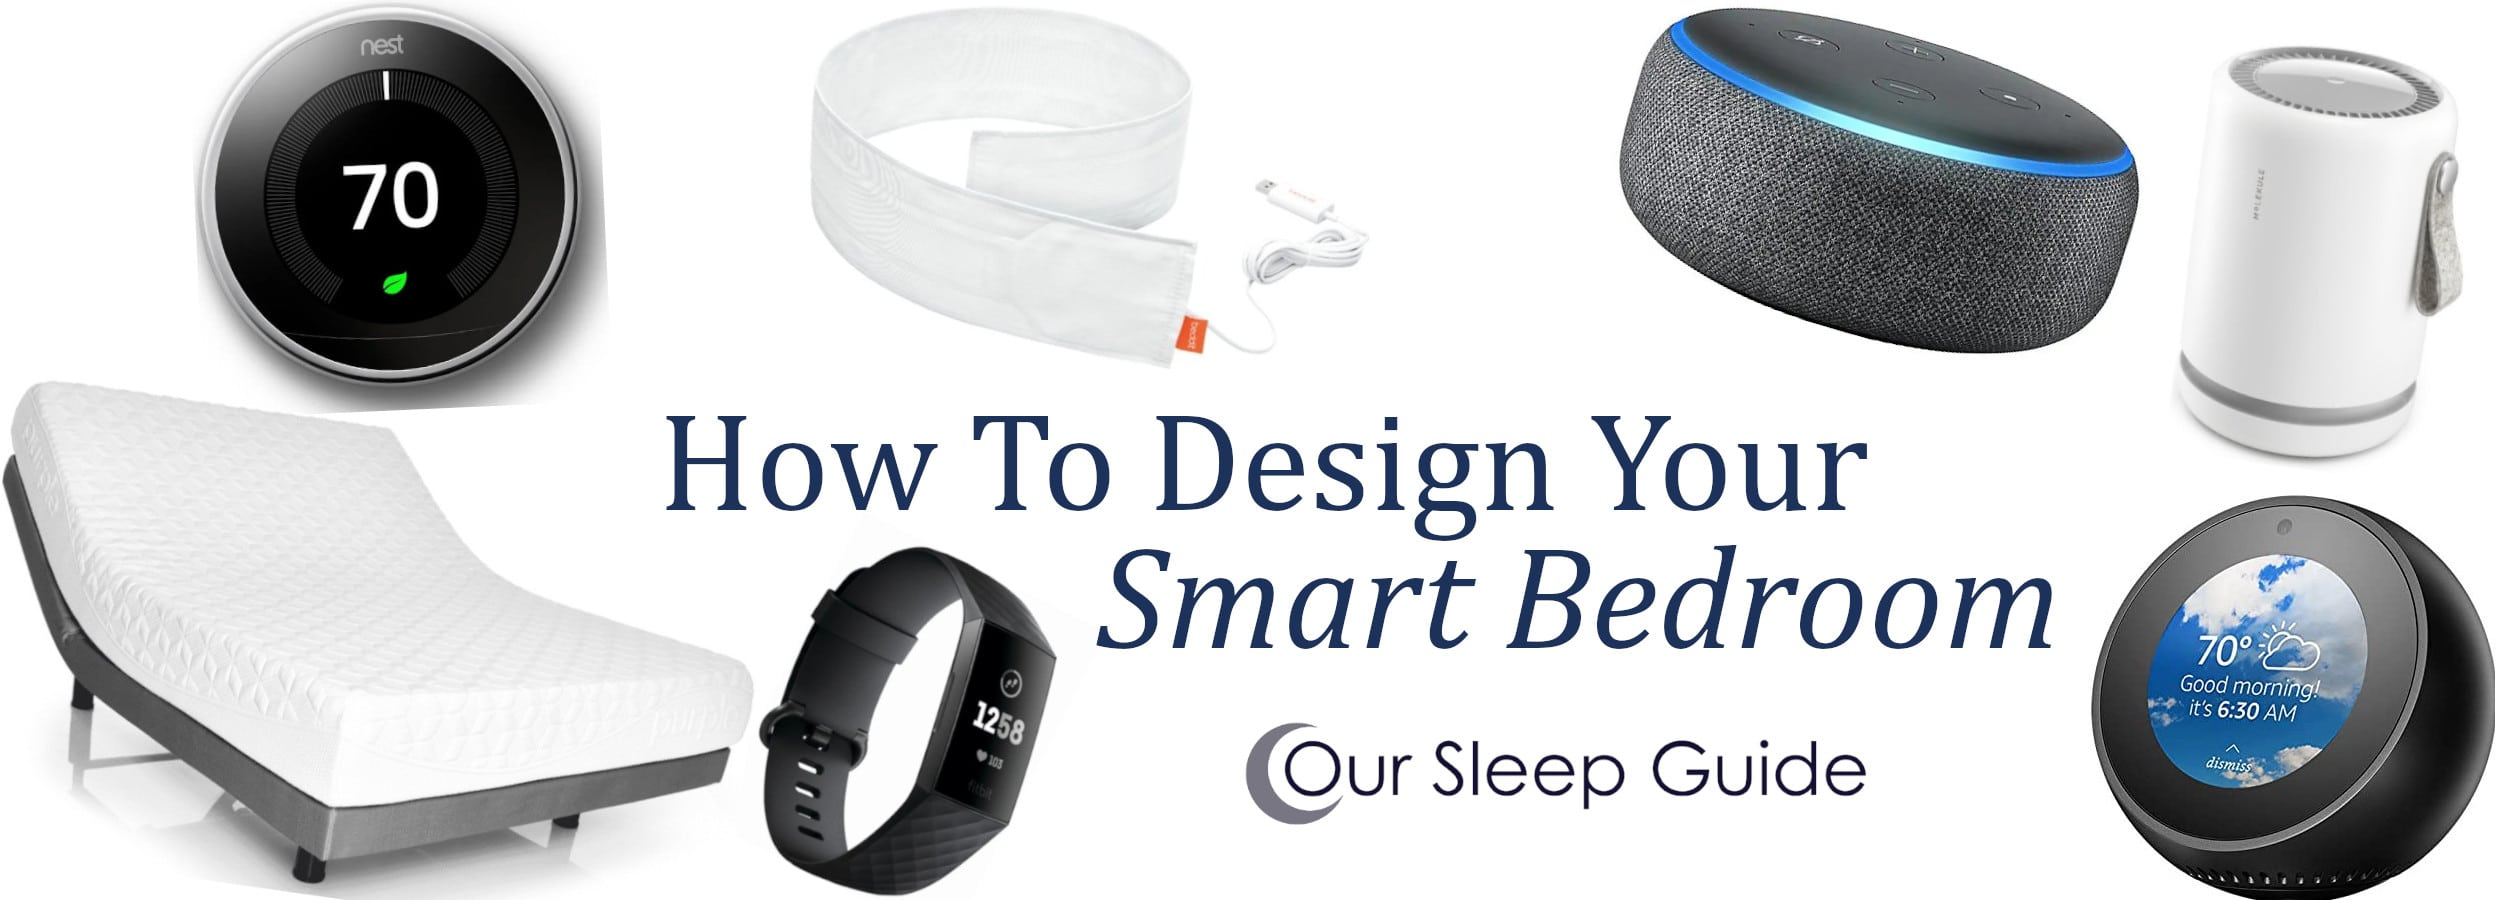 how to design your Smart Bedroom top gadgets and tips